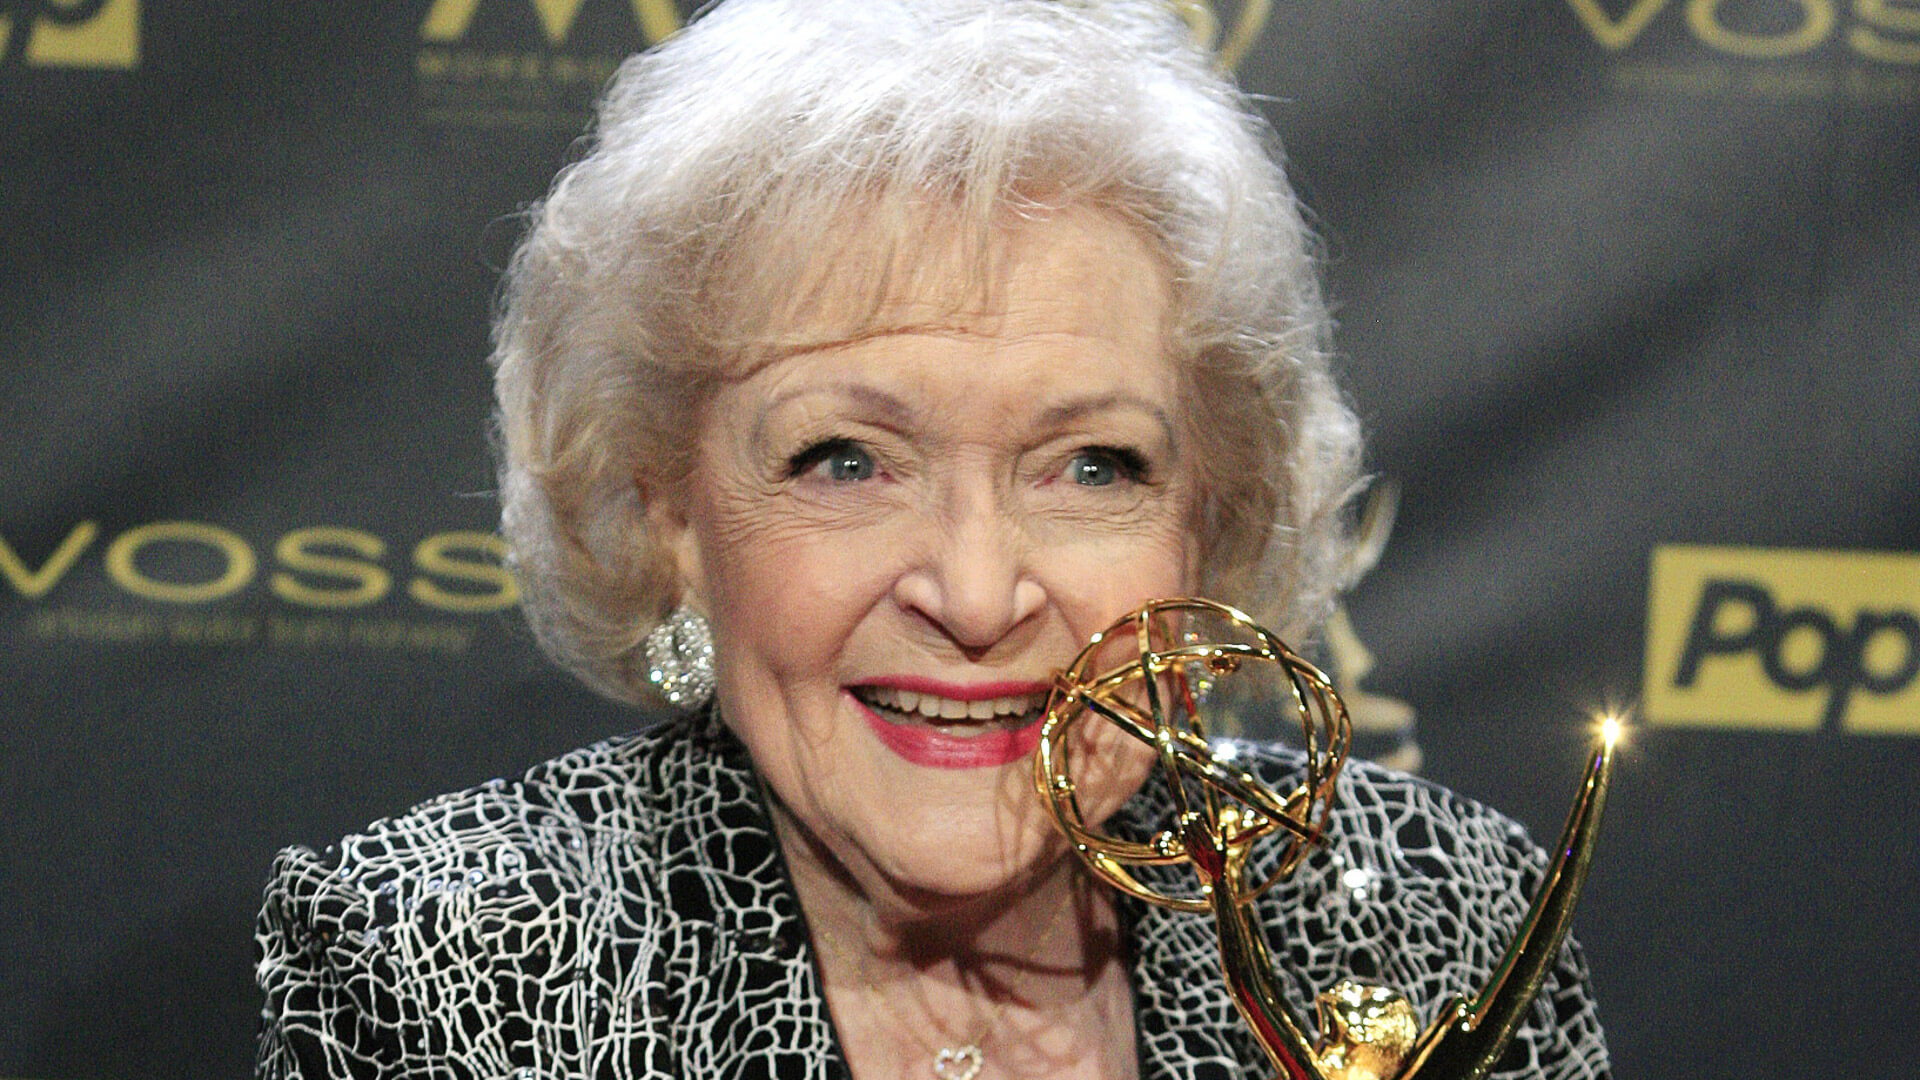 Betty White, Cher and 38 More of the Richest Stars Over 70